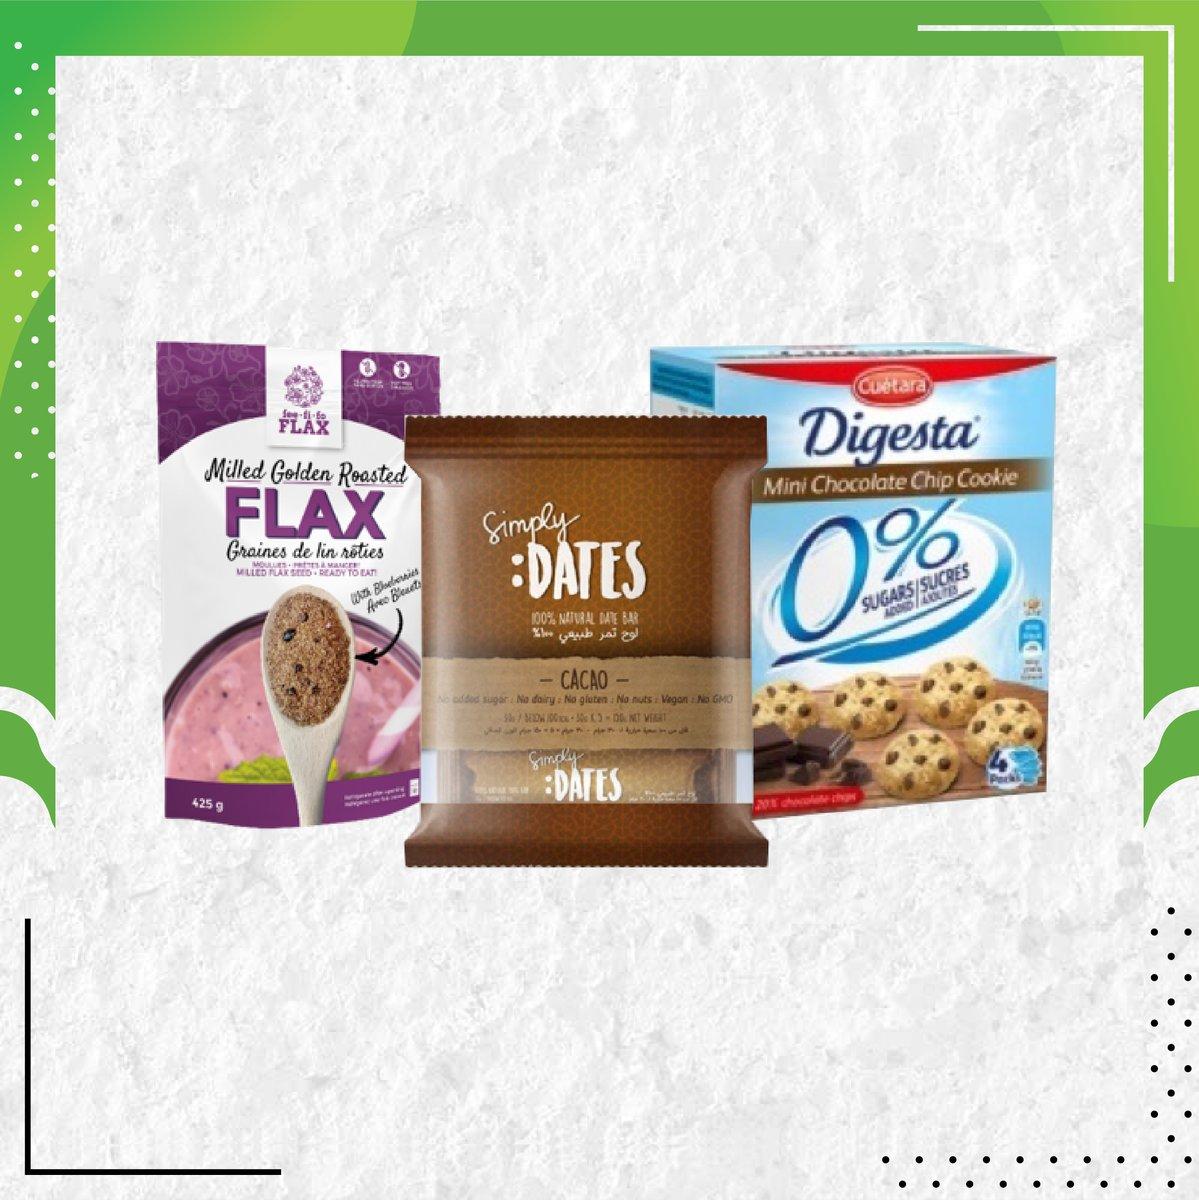 Craving a snack? Choose healthy!🌱  Available at a Souq Planet closest to you  #souqplanet #smartshopper #onlineshopping #groceryshopping #inabudhabi #dubai #alain #uae #vegan #madinatzayed #safeplanet #stayhome #socialdistancing https://t.co/uEXeEWoGmR